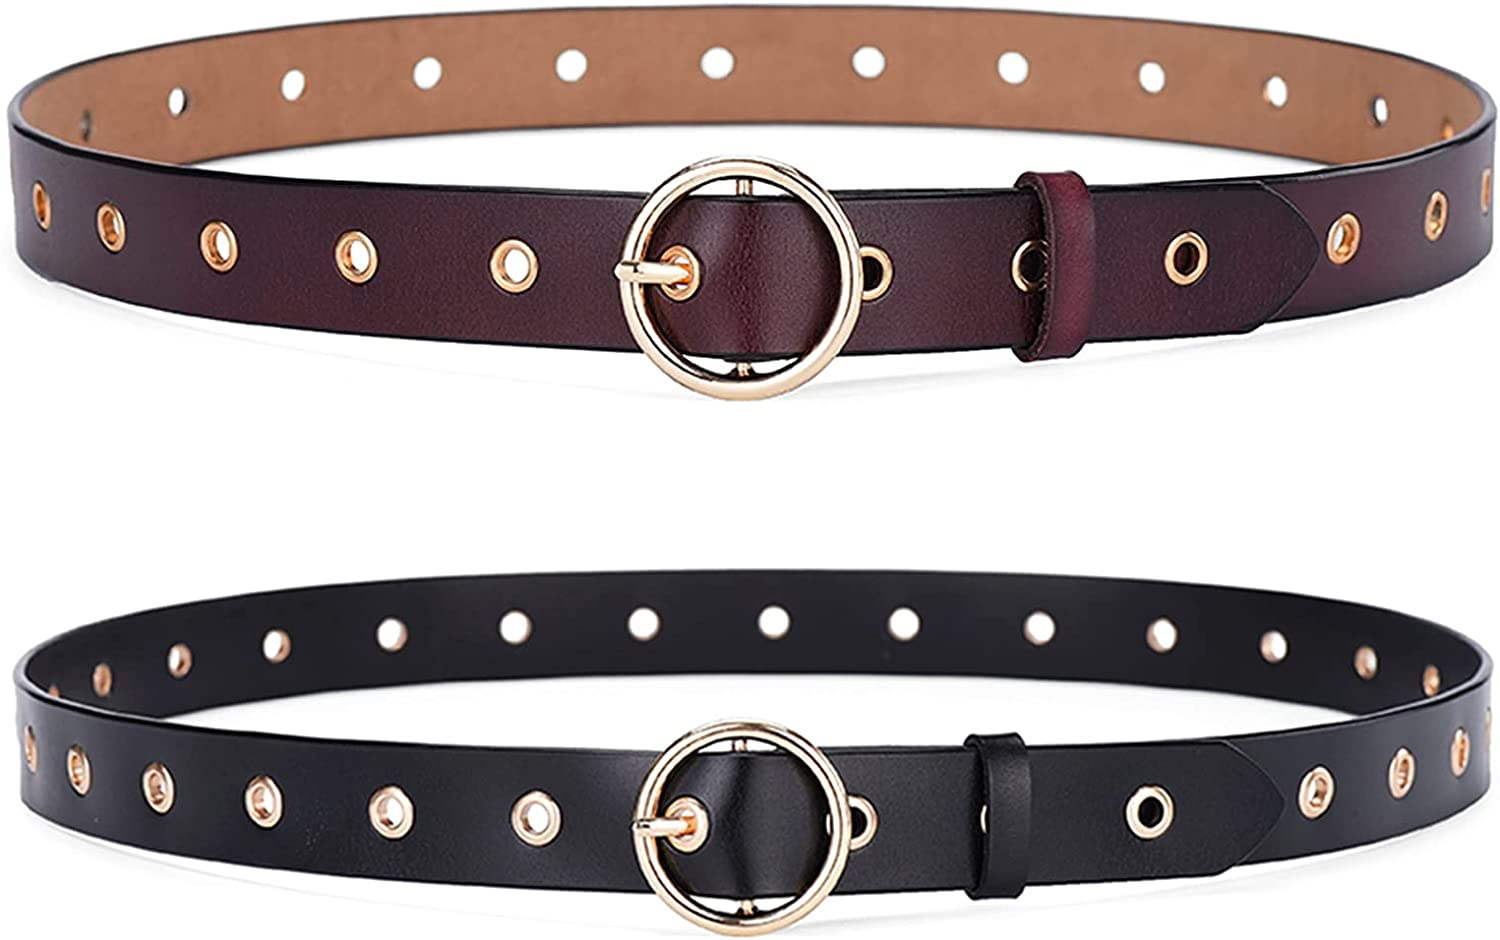 Avitalk Women's Faux Leather Belt Stylish Popular brand in the world Jeans for Durable Limited time cheap sale